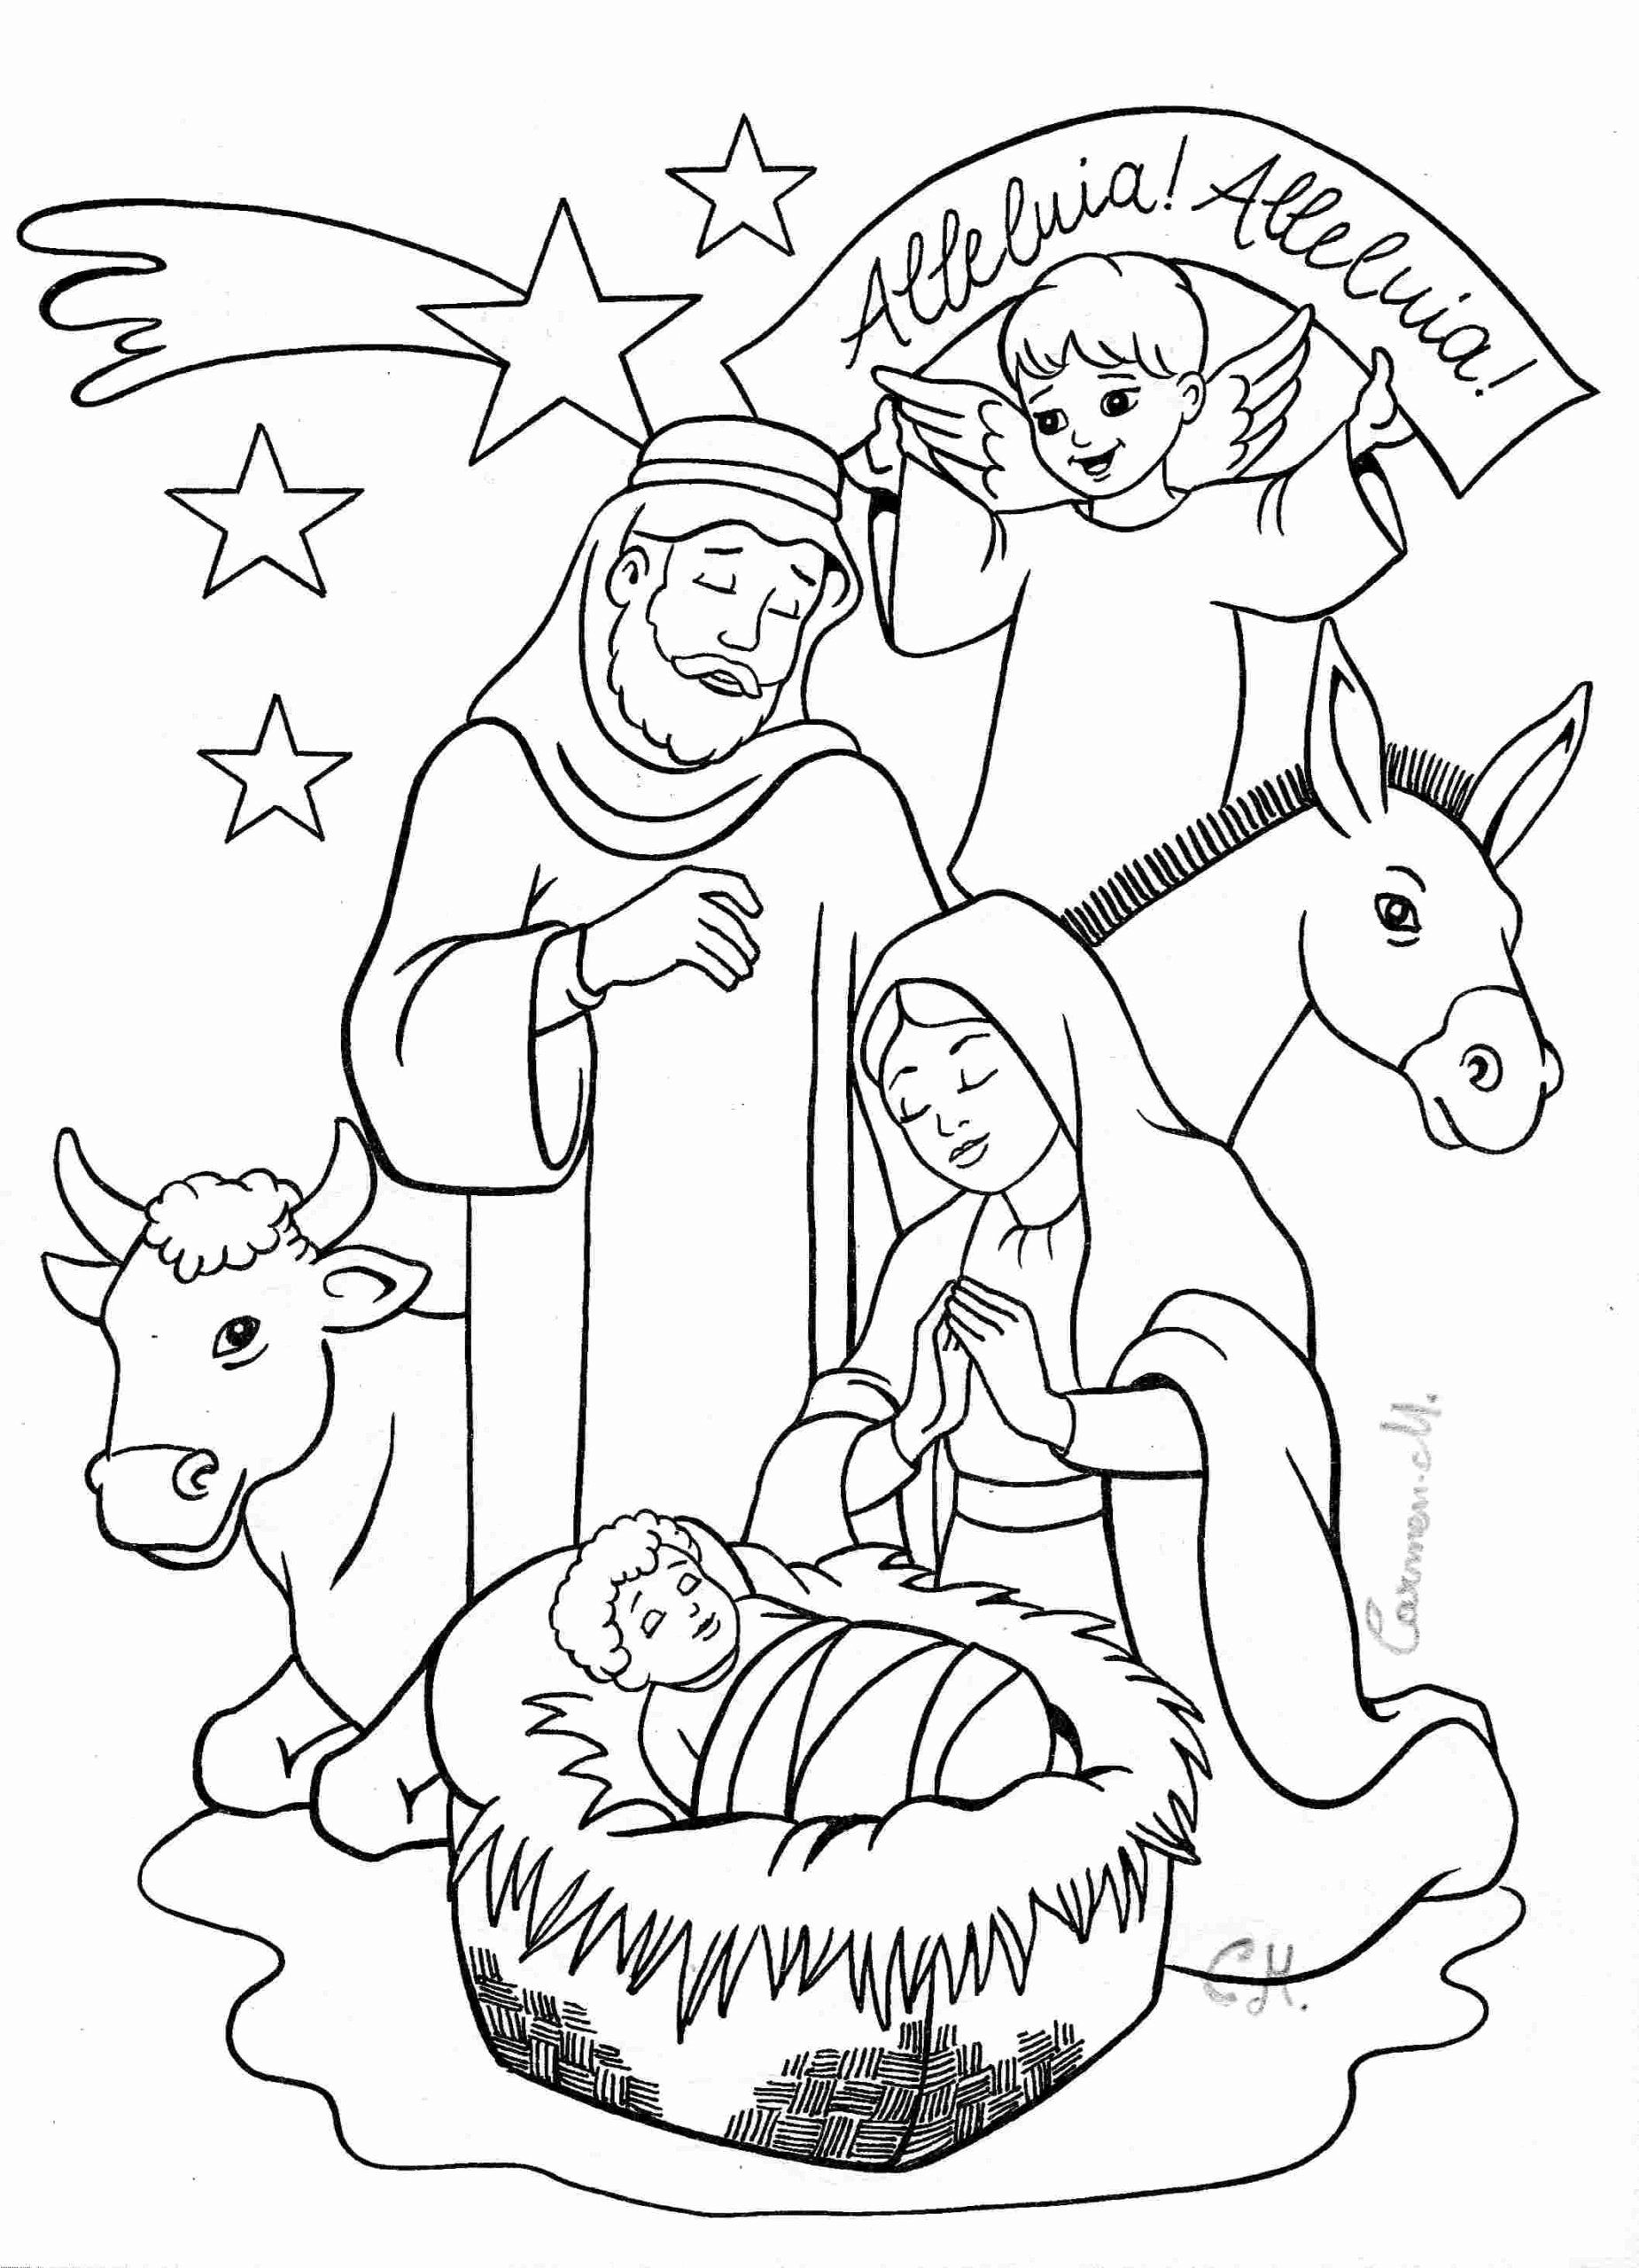 Christmas Coloring Pages Nativity Inspirational Coloring Pages Printable Christmas Nativity In 2020 Nativity Coloring Pages Nativity Coloring Christmas Coloring Sheets